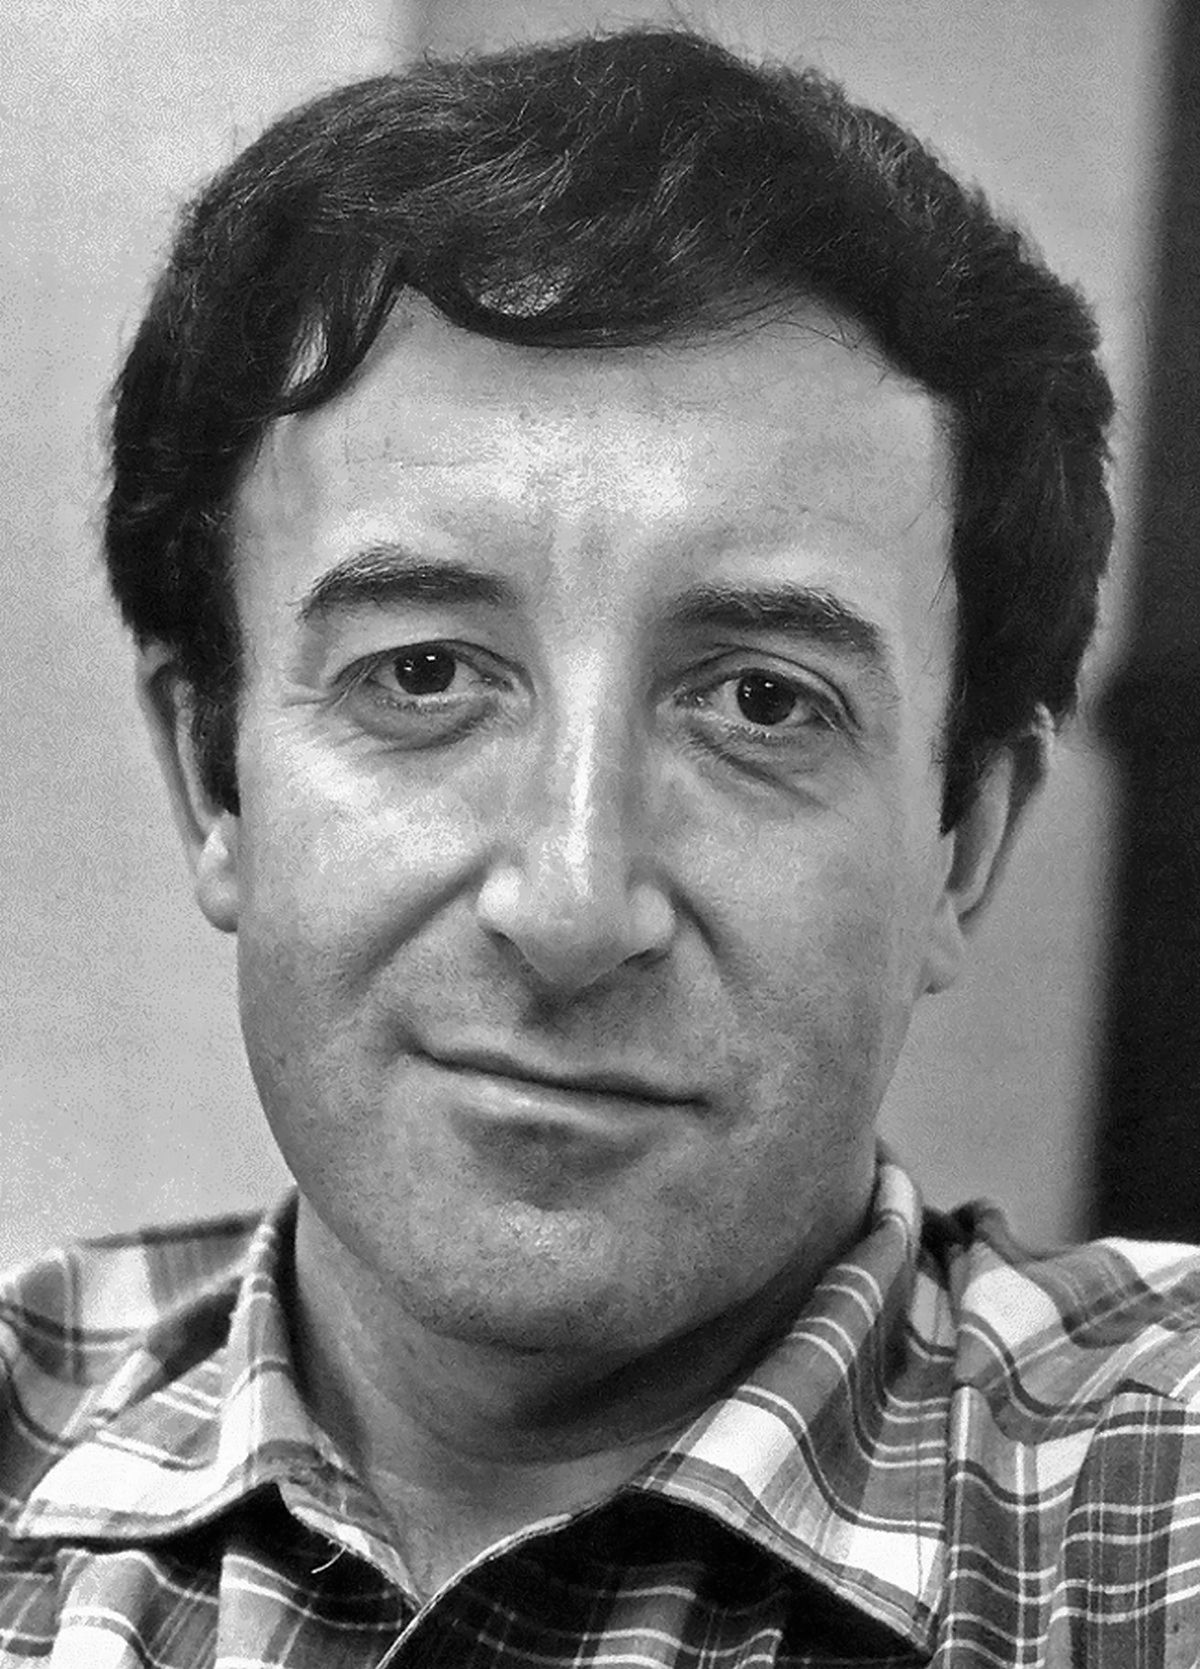 Peter Sellers, British actor & comic, best known as Chief Inspector Clouseau in  the Pink Panther series of movies.